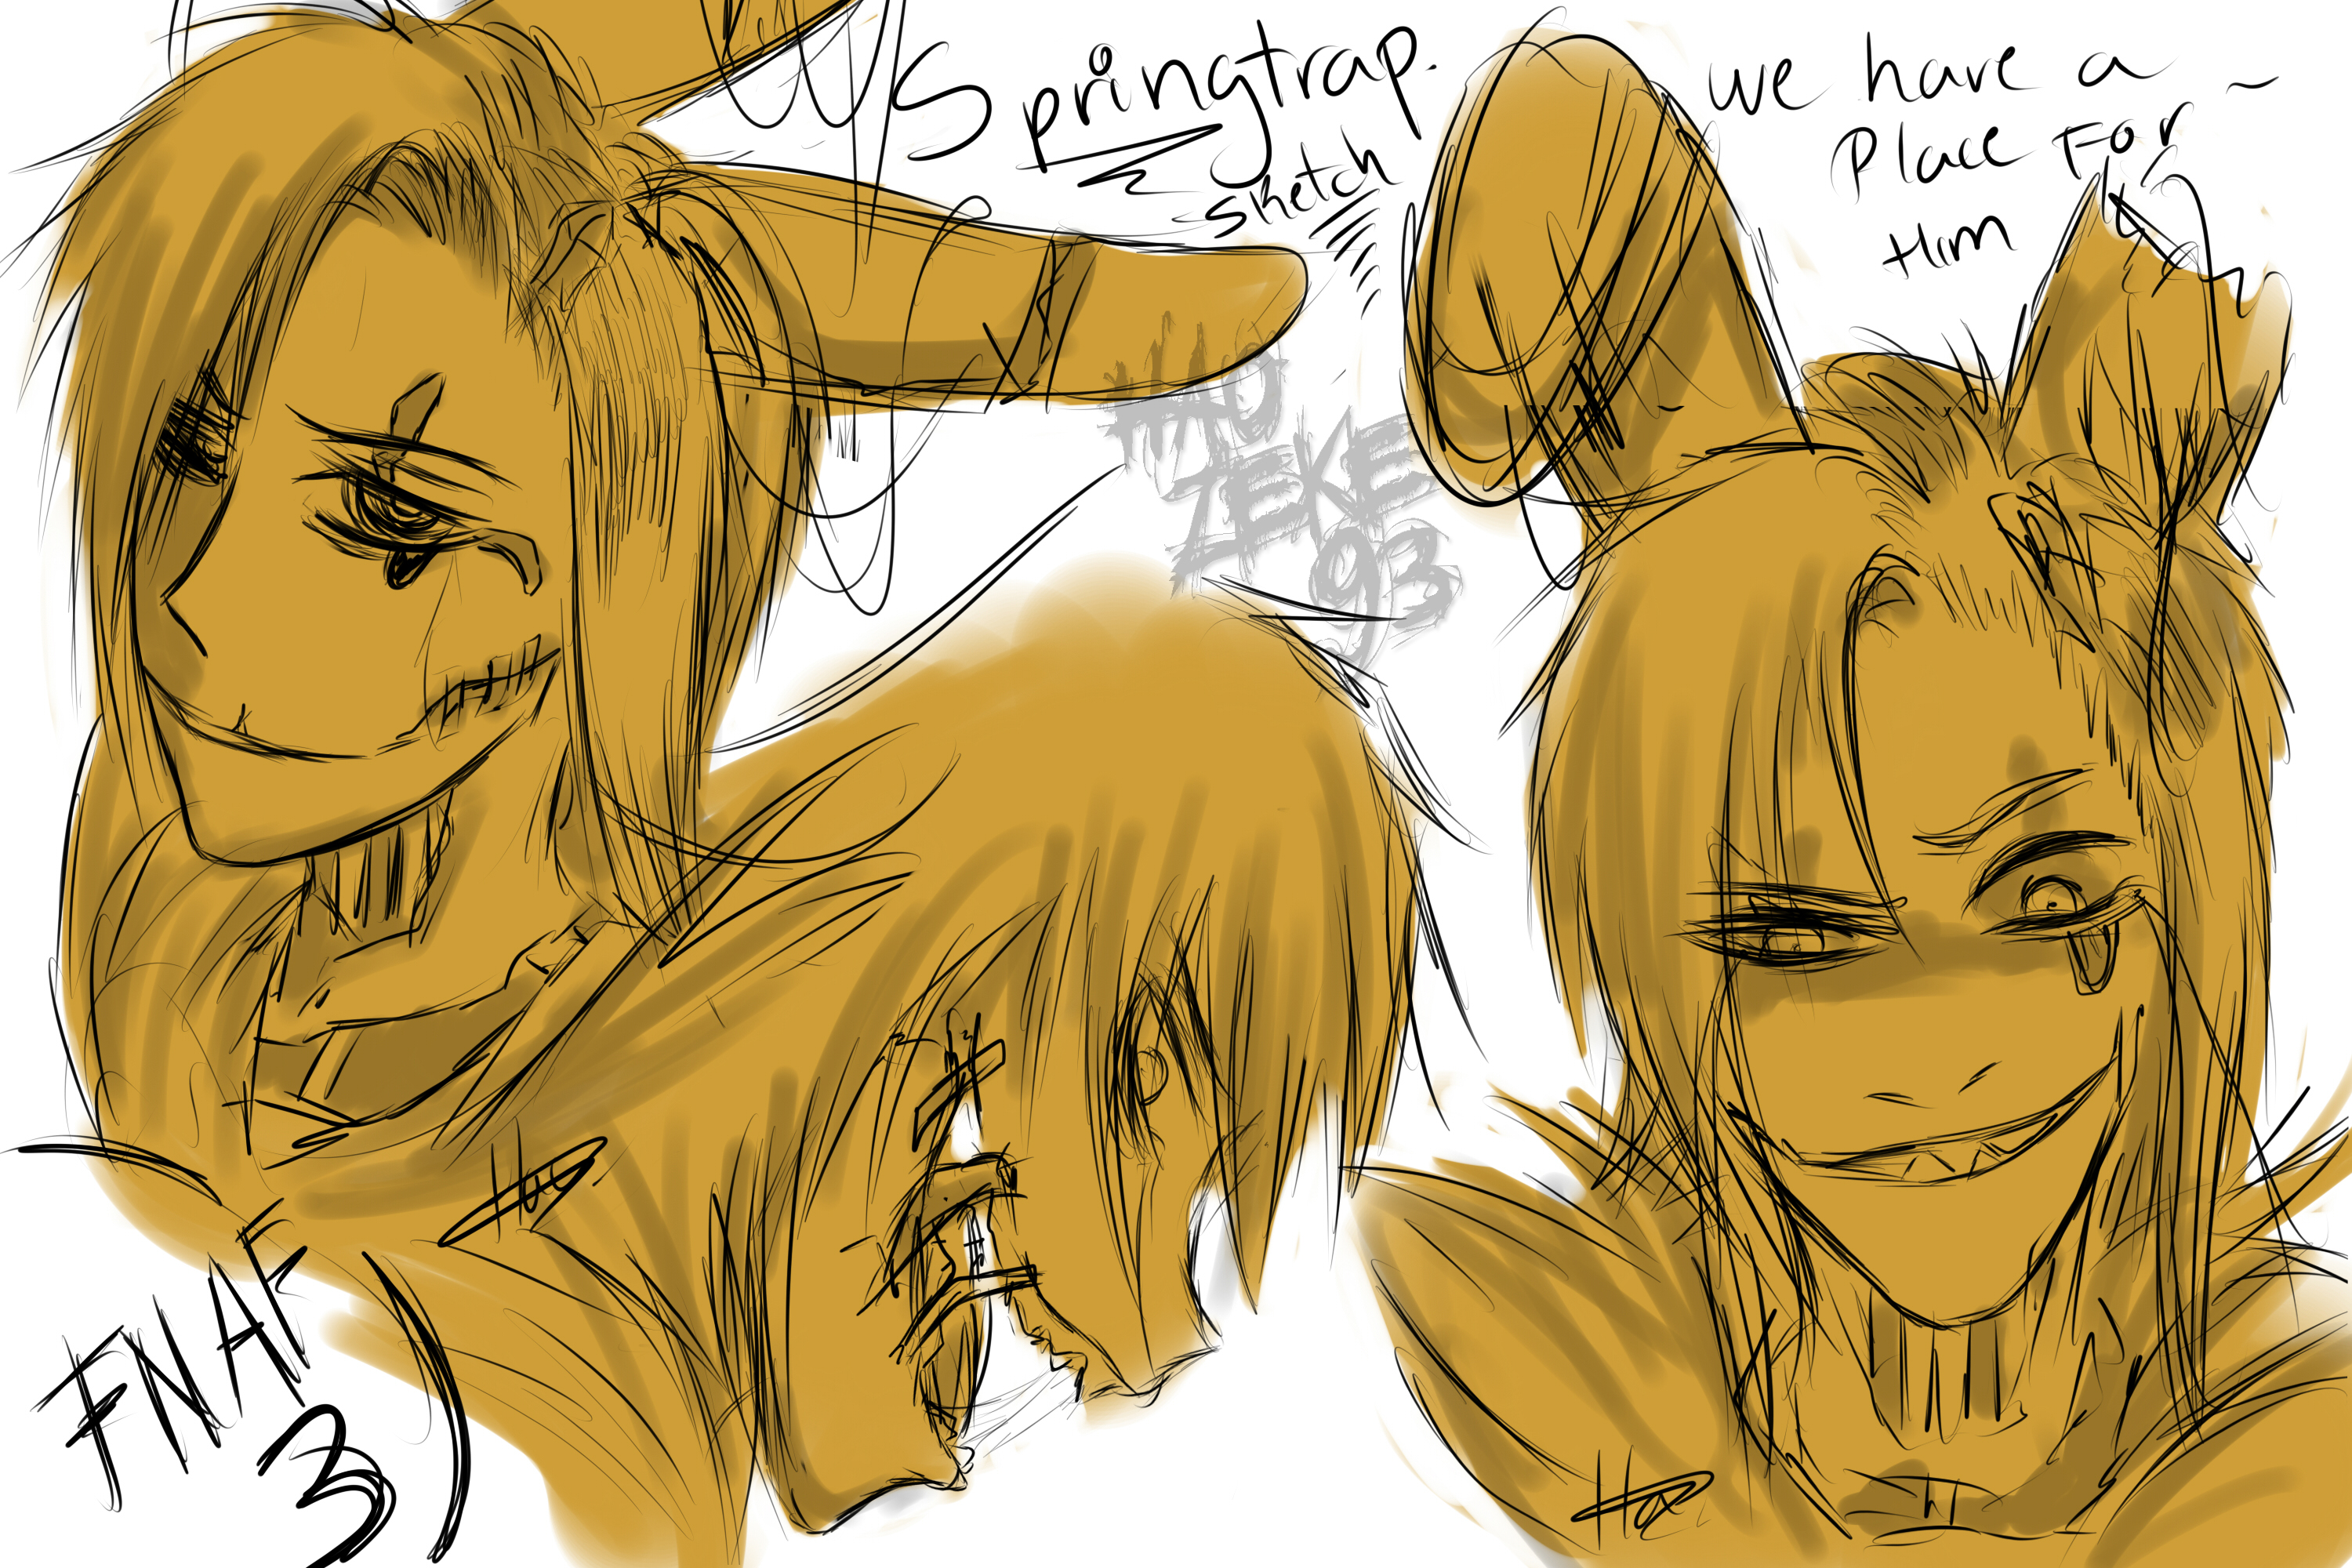 Phone guy x purple guy fanfic lemon - Springtrap Sketch By Haozeke93